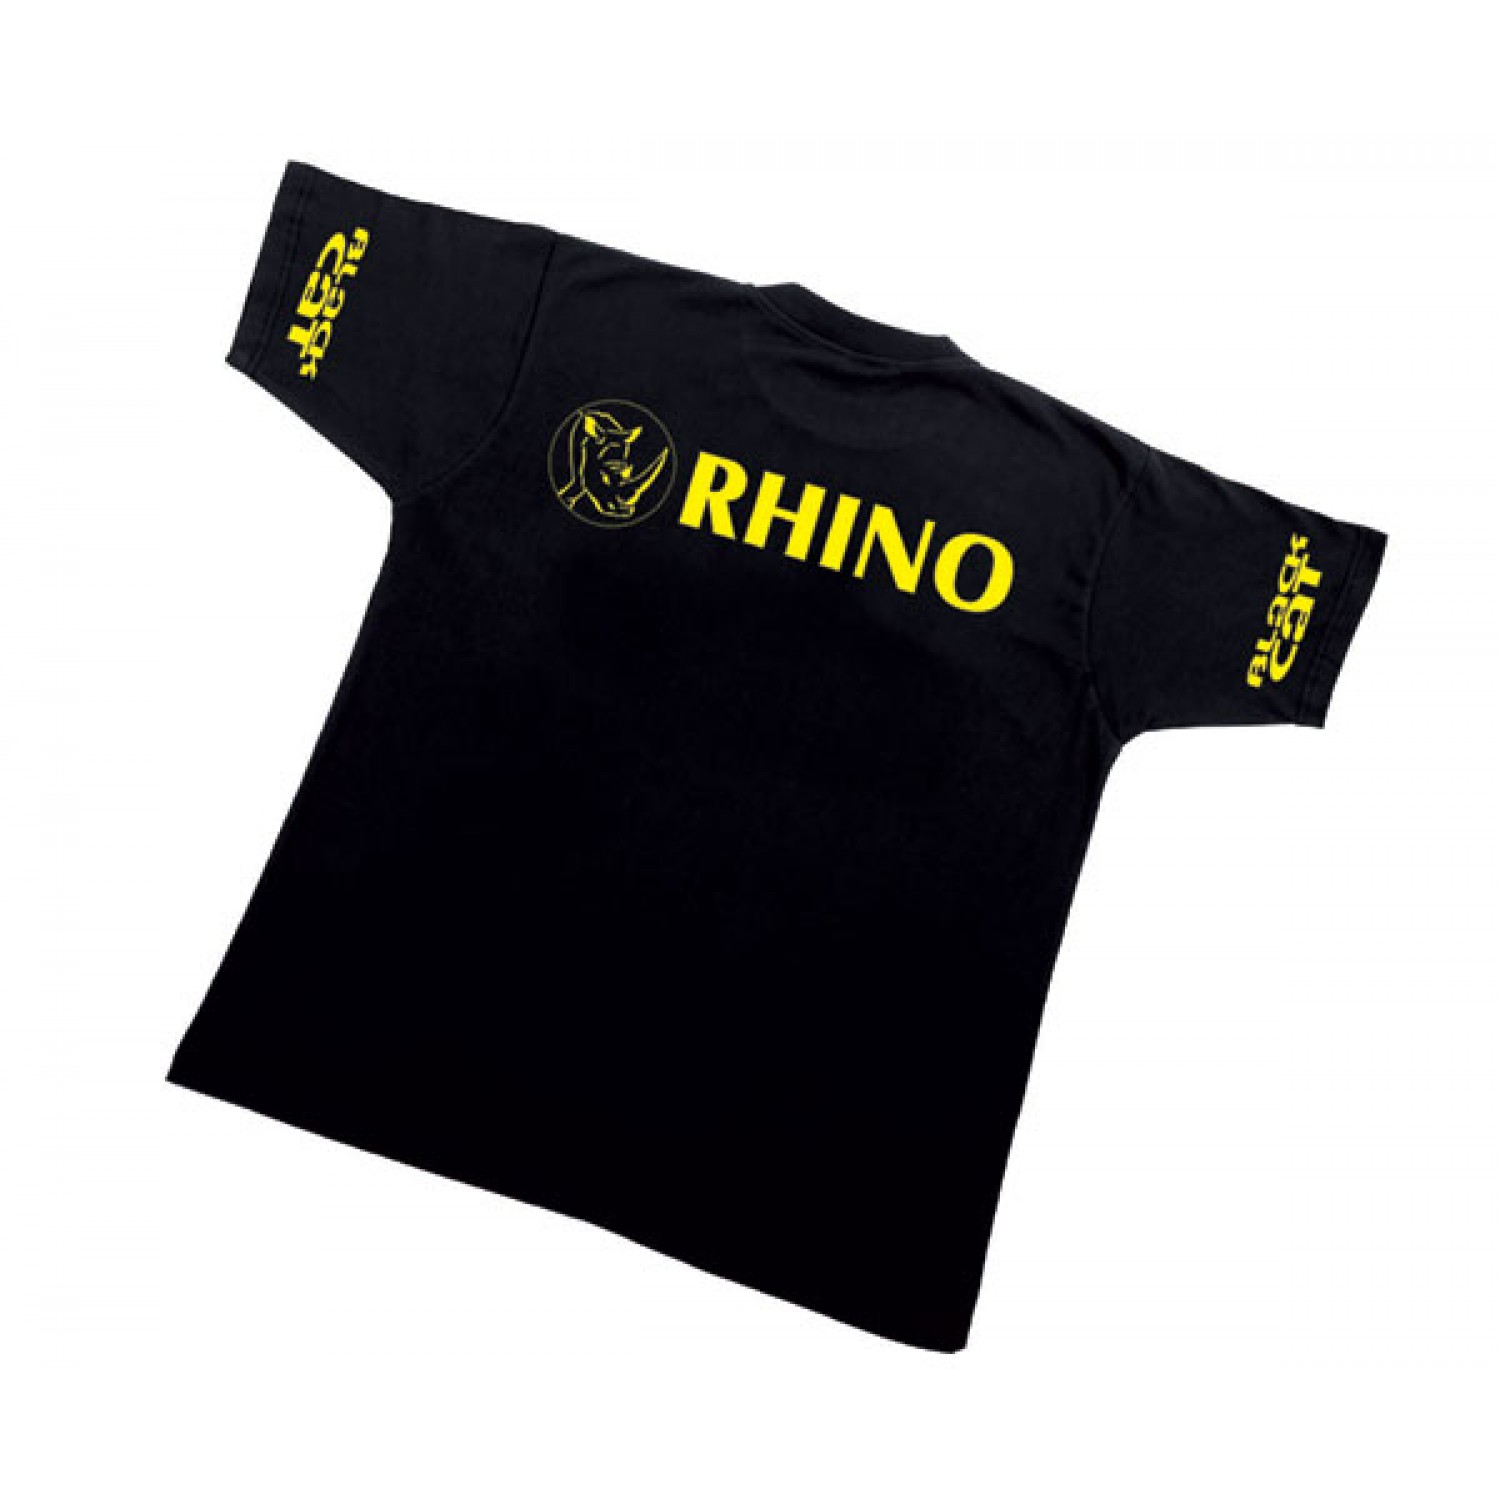 RHINO Black Cat T-Shirt